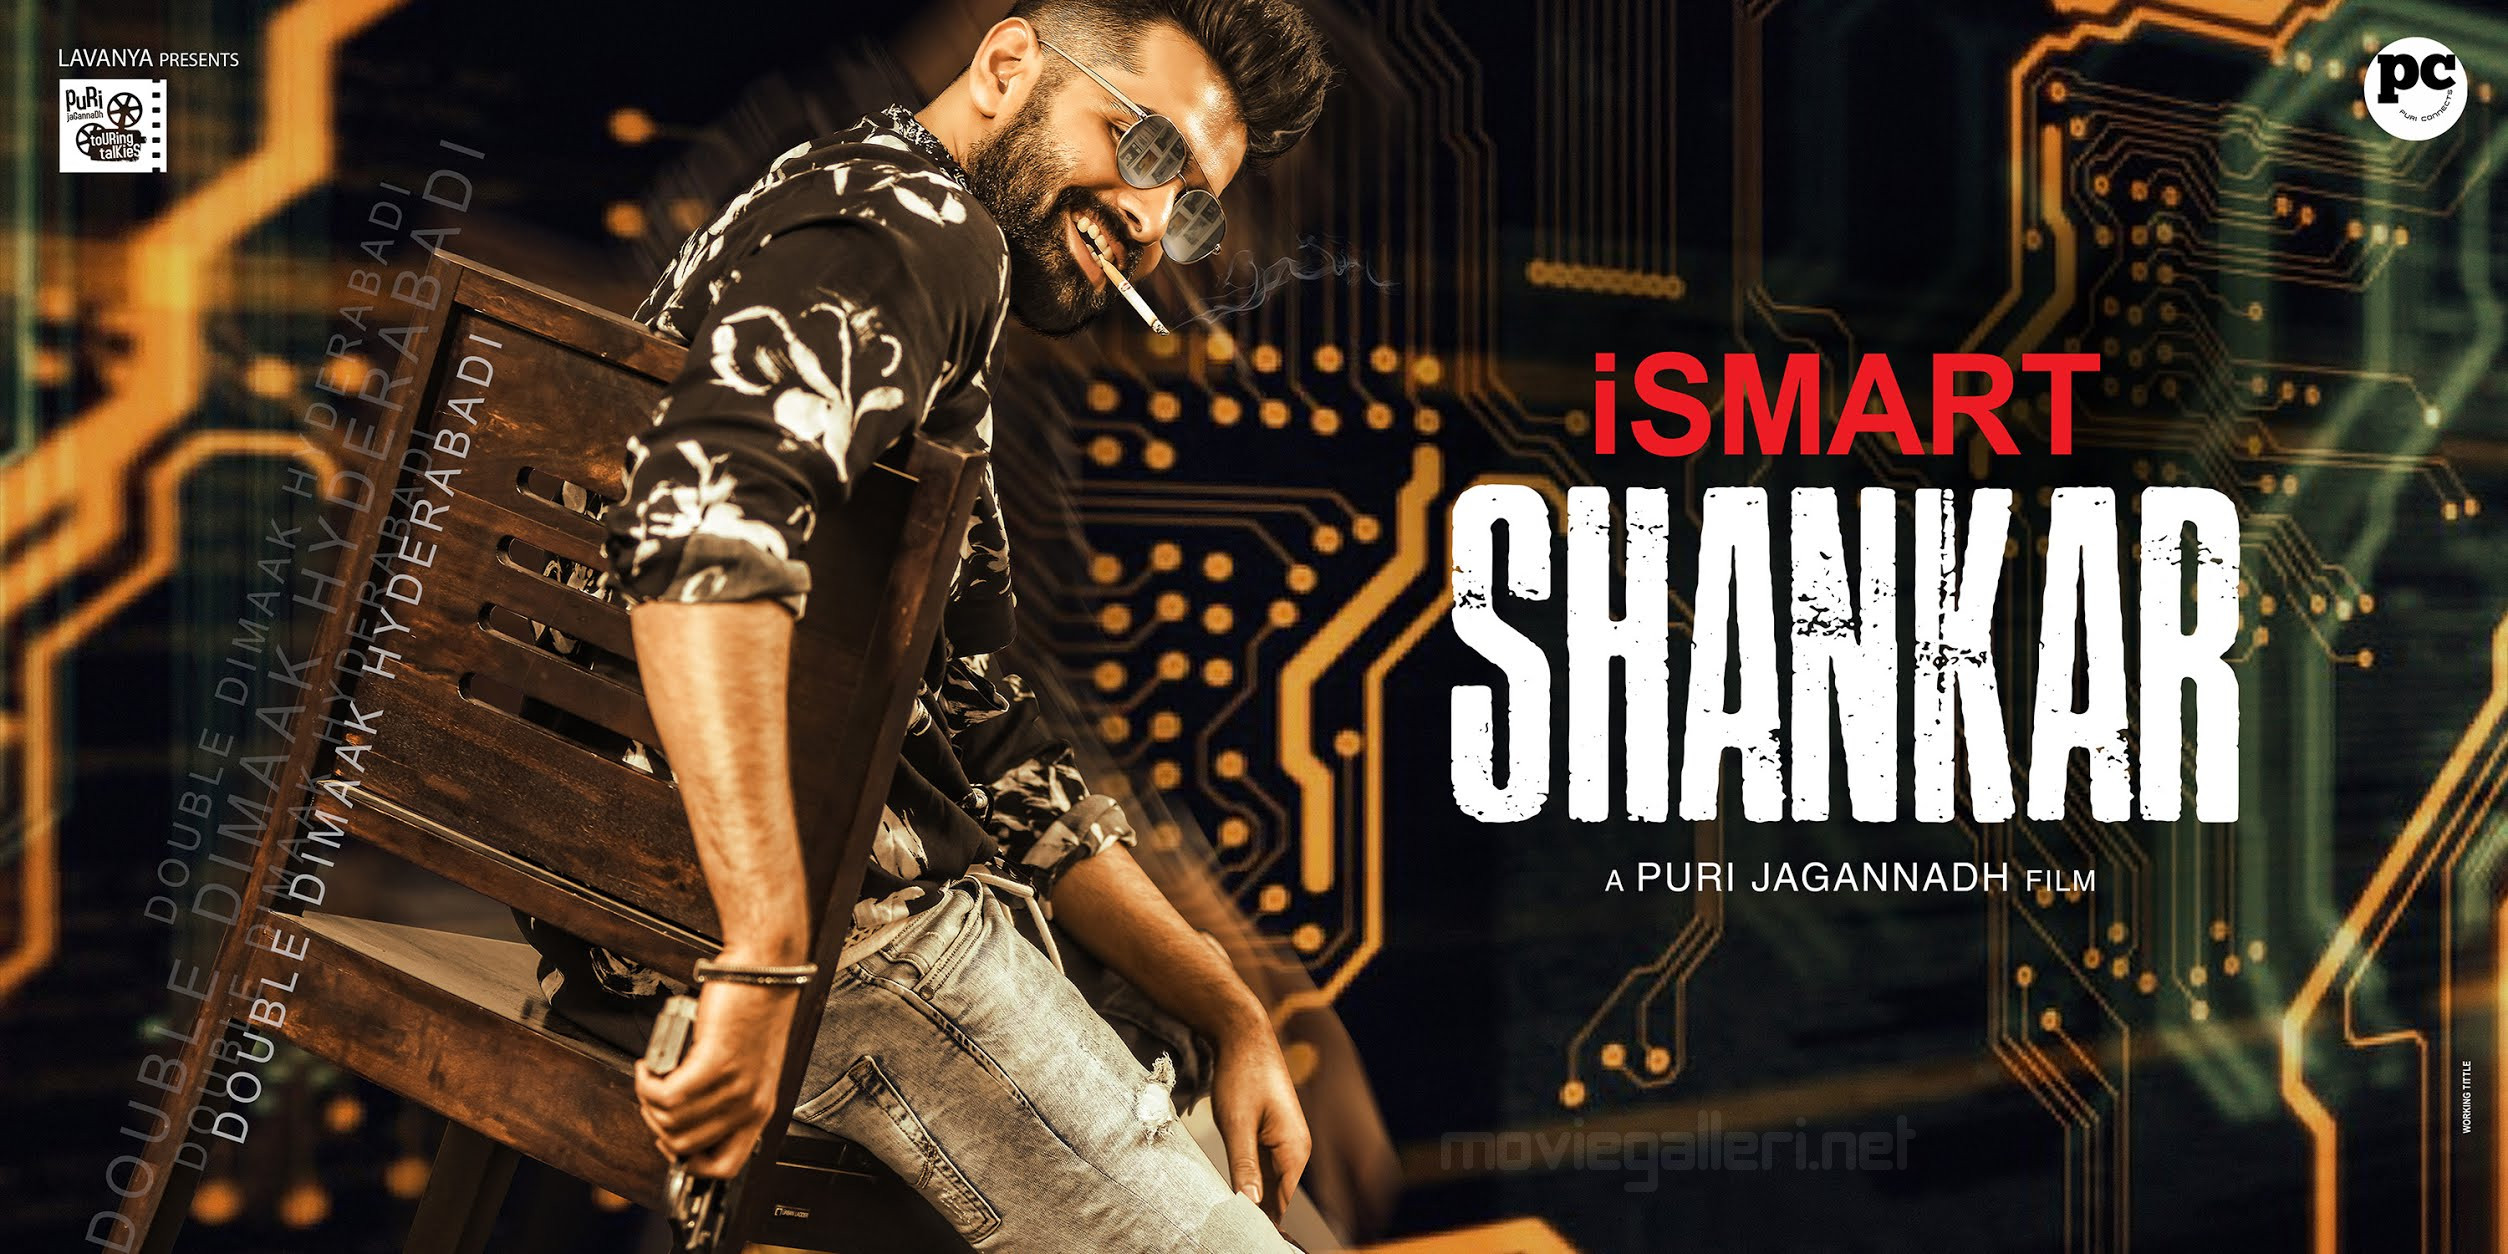 Ram Pothineni - Puri Jagannadh Movie Titled ISmart Shankar